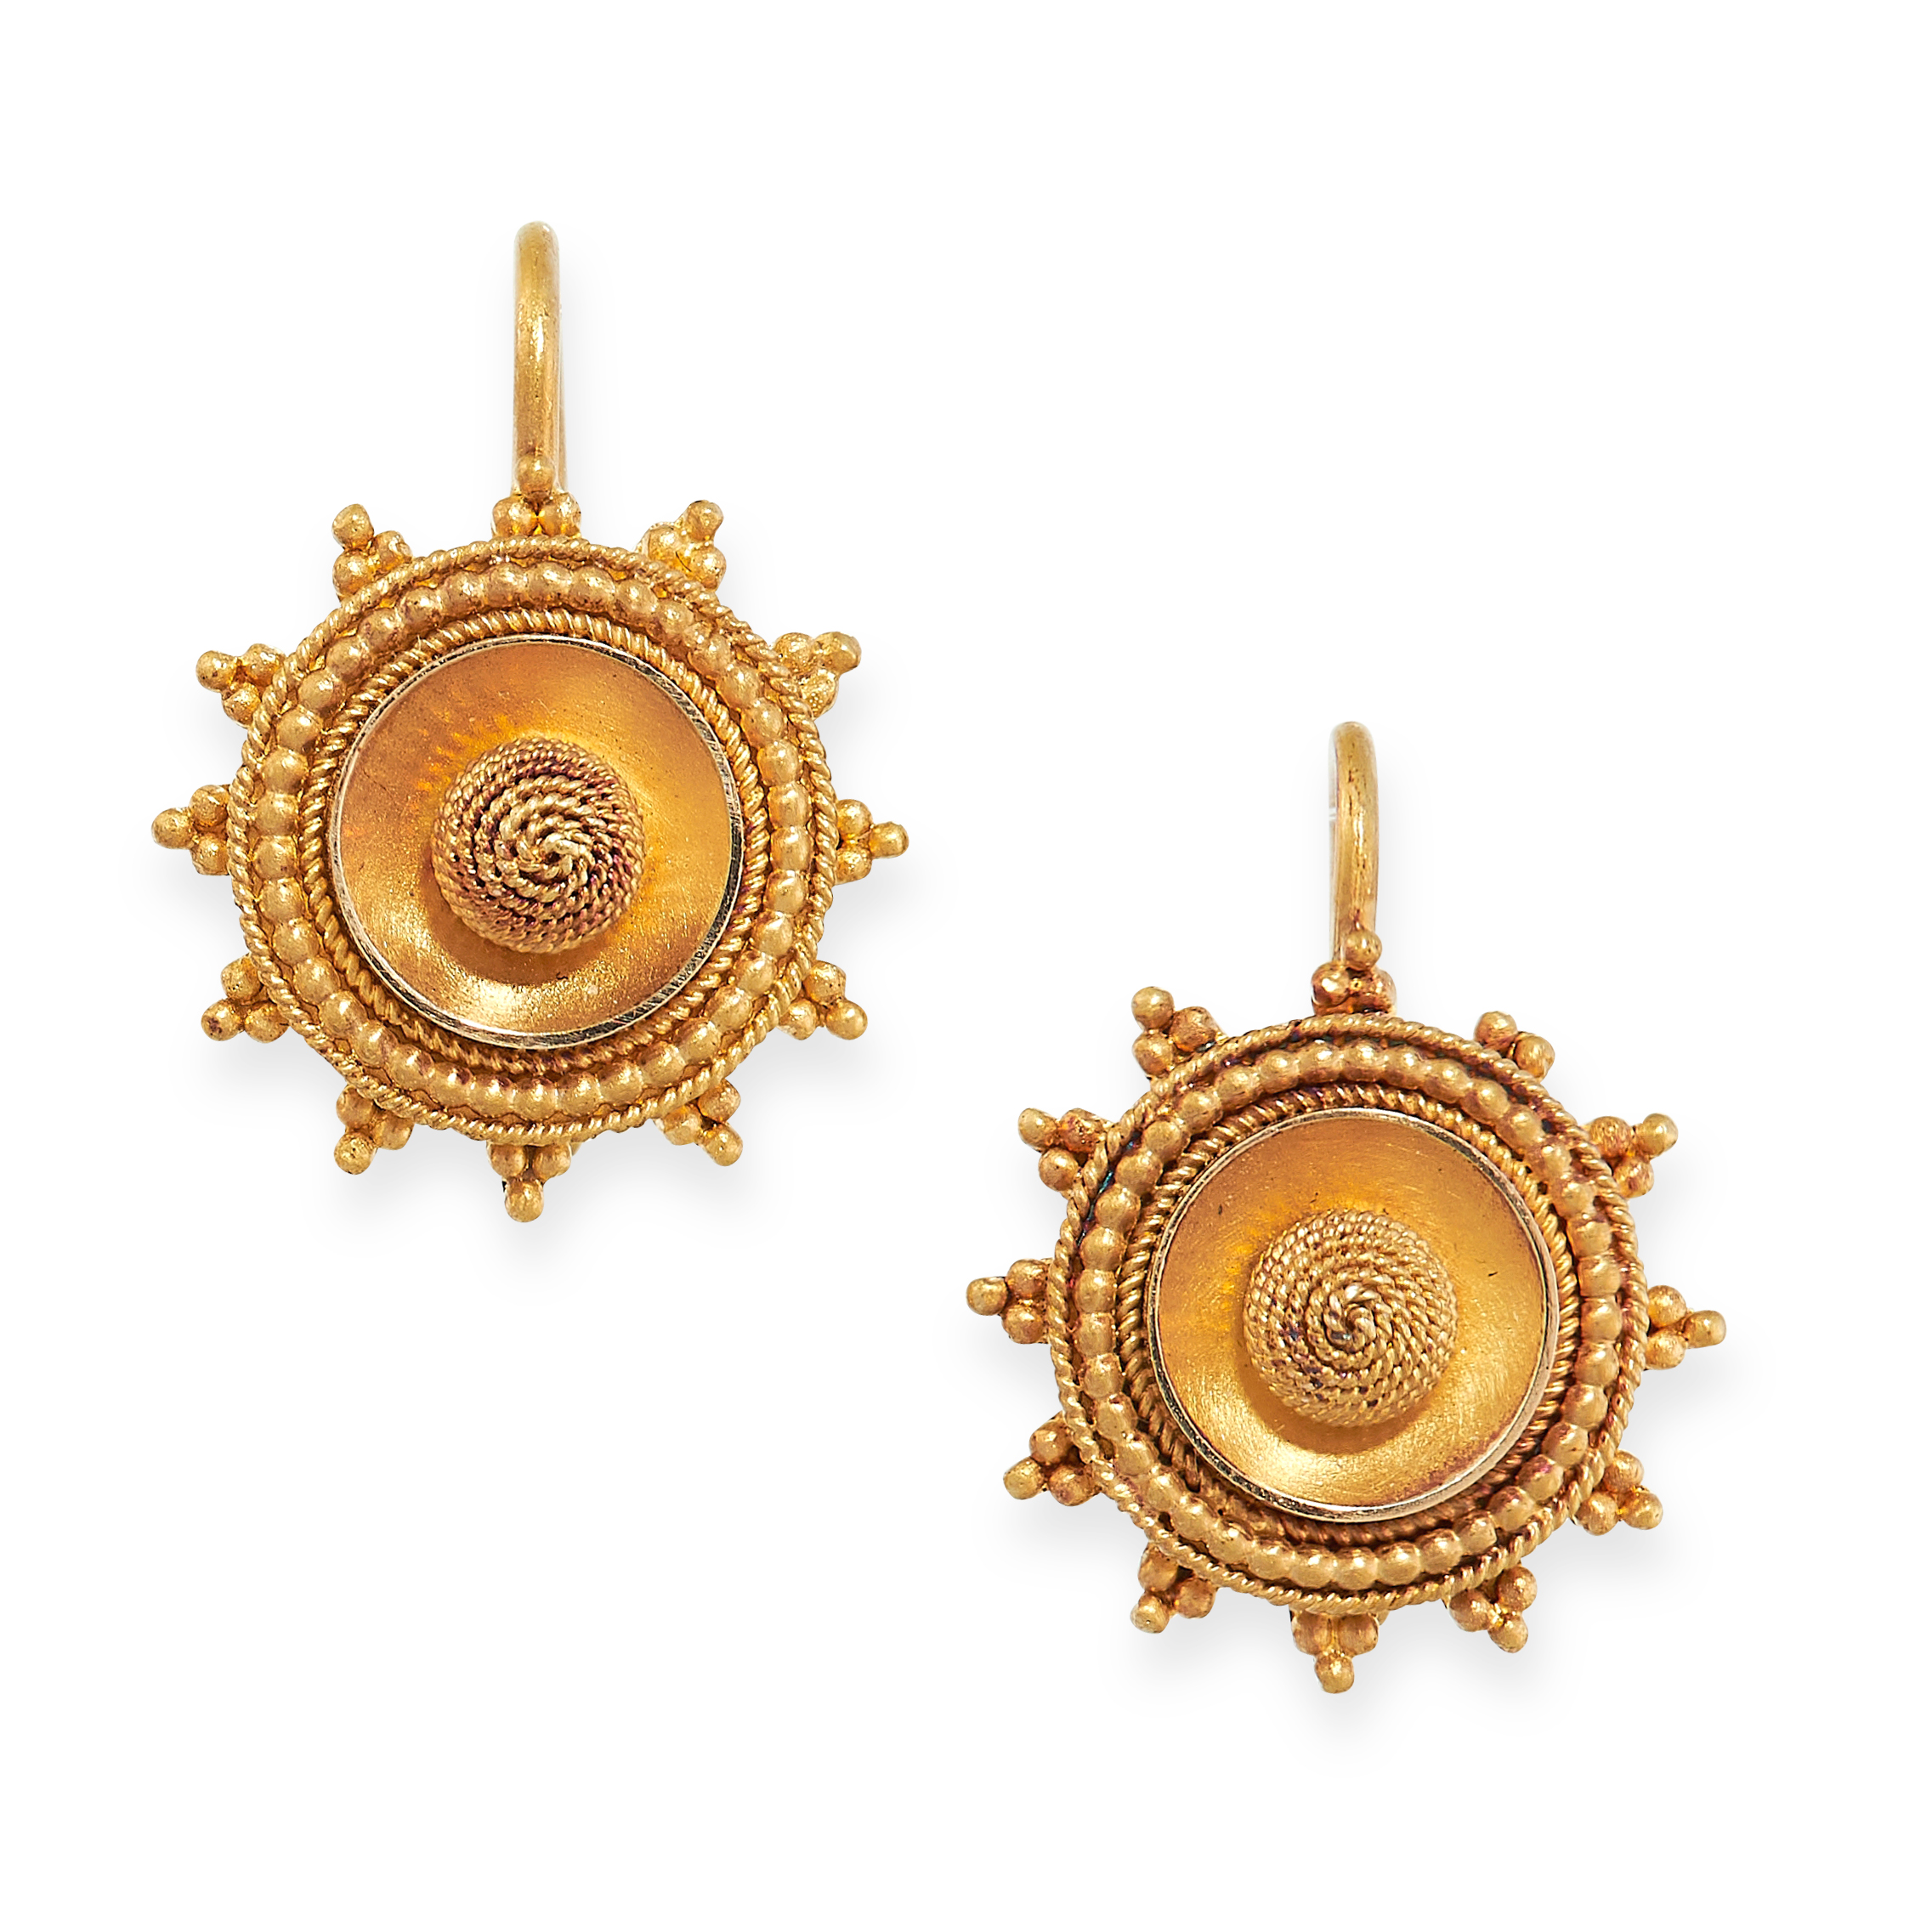 ANTIQUE VICTORIAN EARRINGS, 19TH CENTURY in yellow gold, in Etruscan revival form, in circular